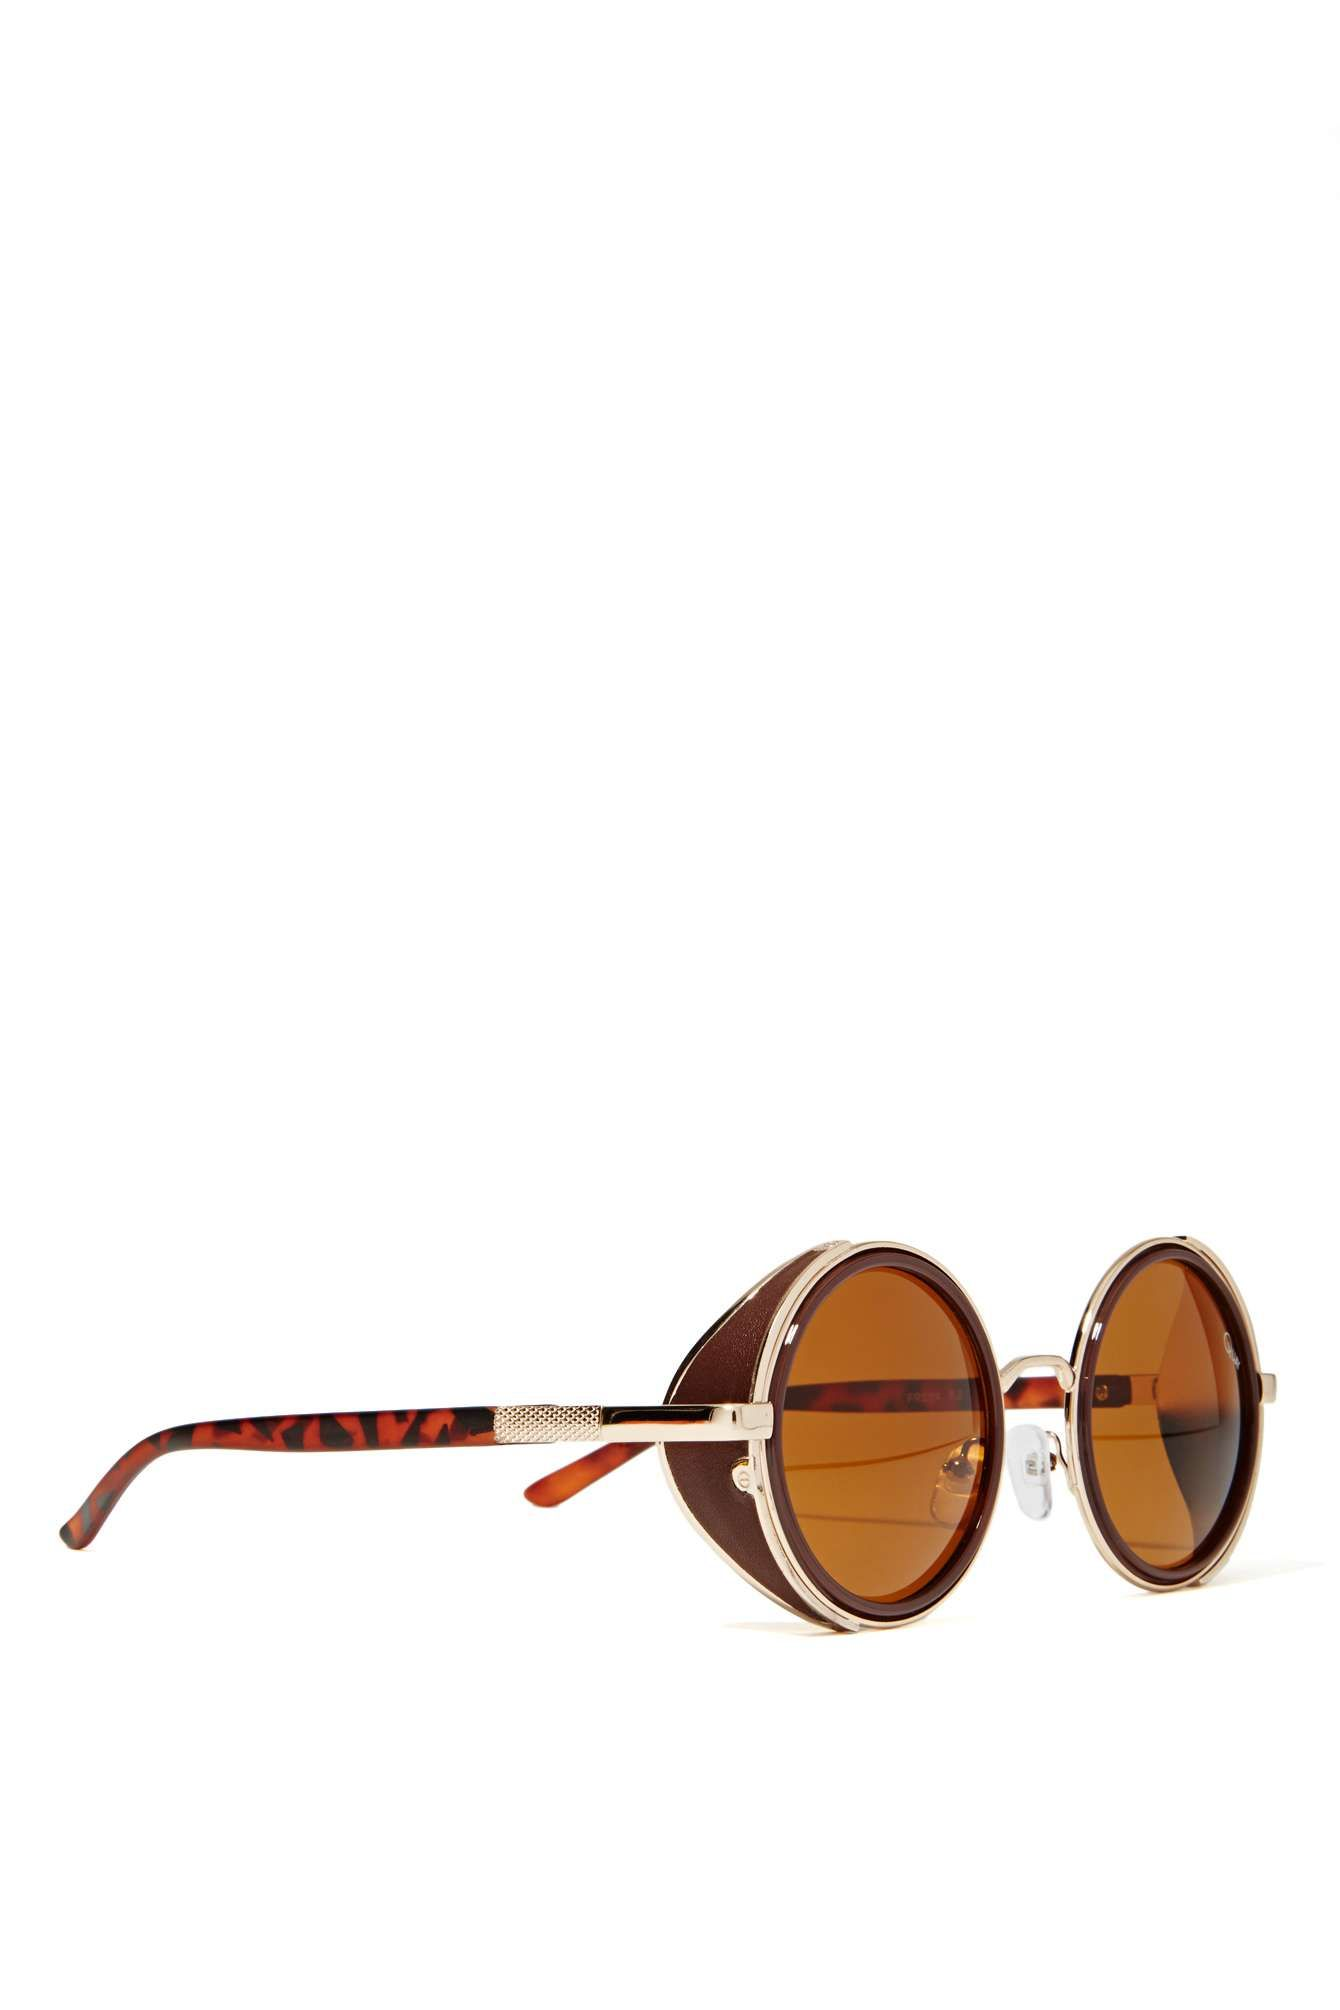 Quay Freya Shades - Tortoise Shell | Shop Product at Nasty Gal!